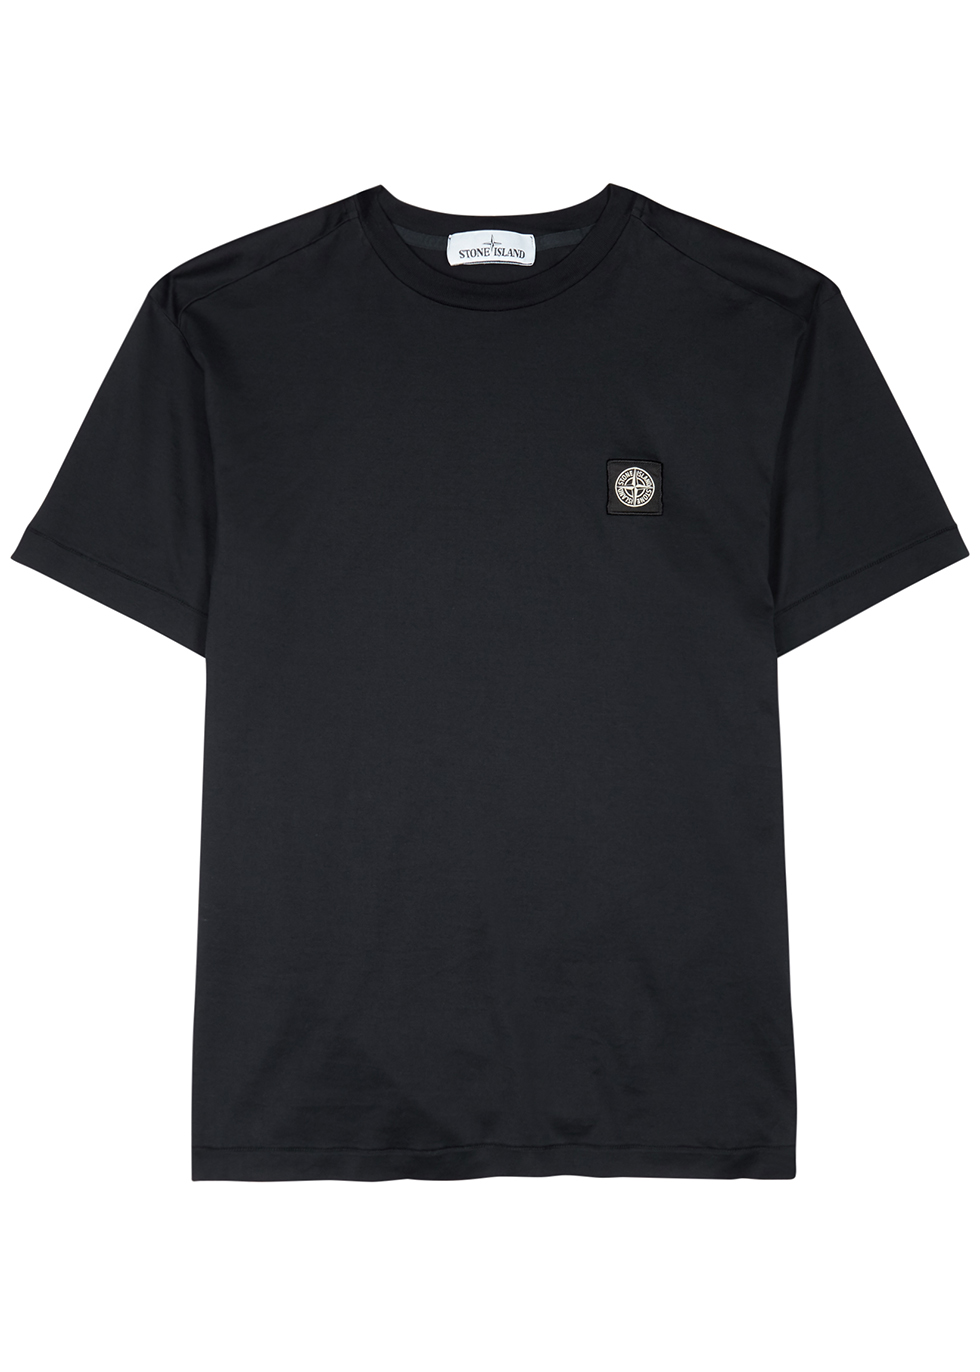 Midnight blue cotton T-shirt - Stone Island